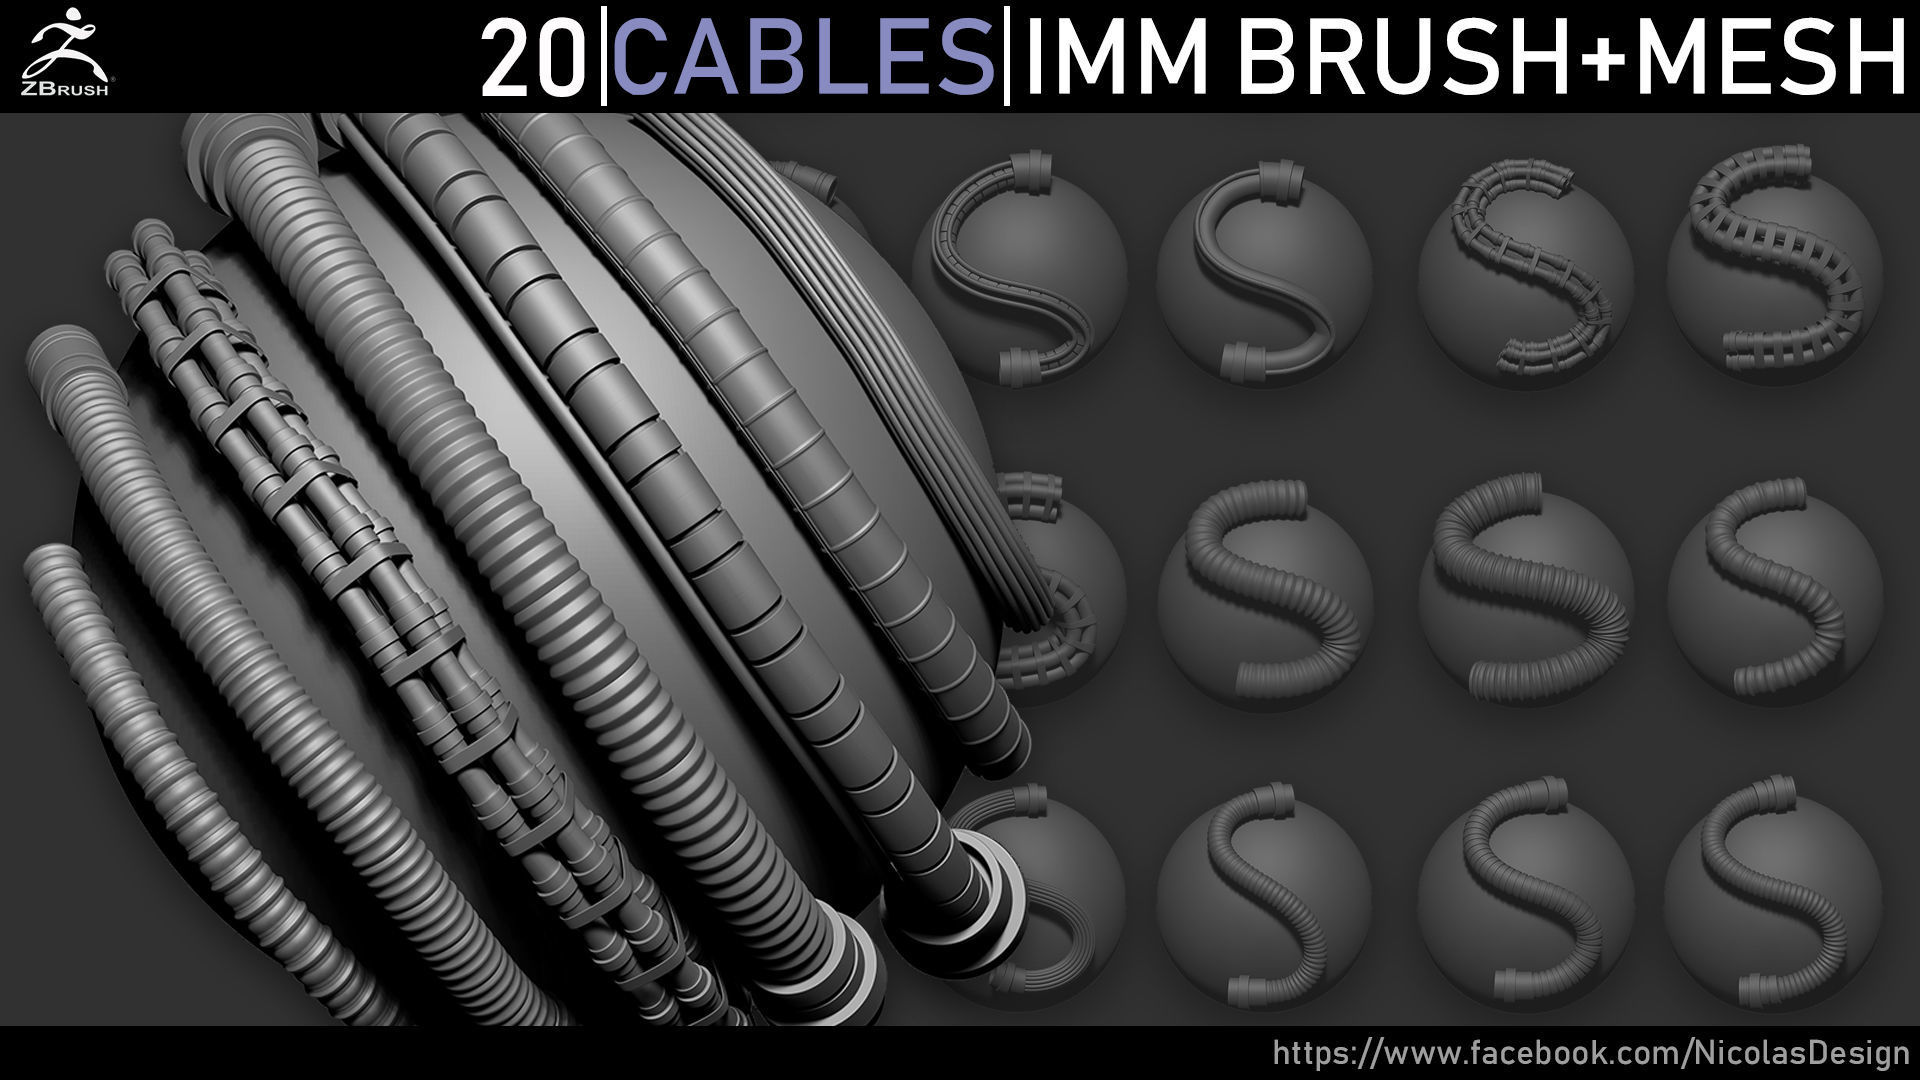 Zbrush - Cables IMM Brush and Meshes | 3D model